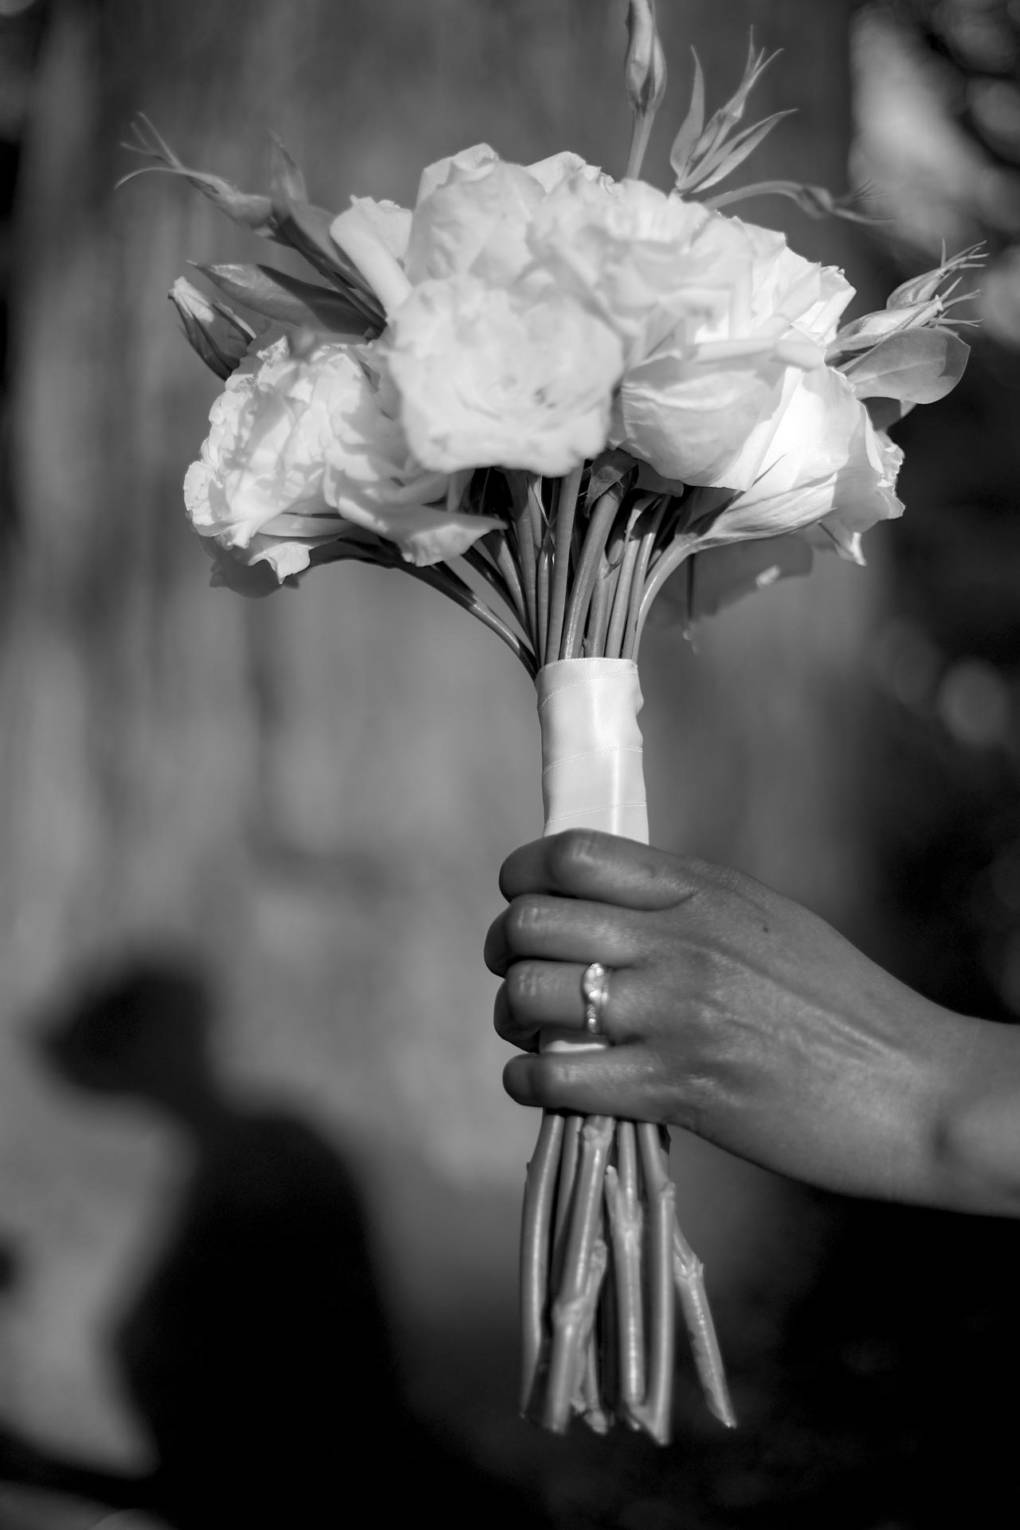 Dalila's hand, on the day of her wedding. Photo taken just last week.